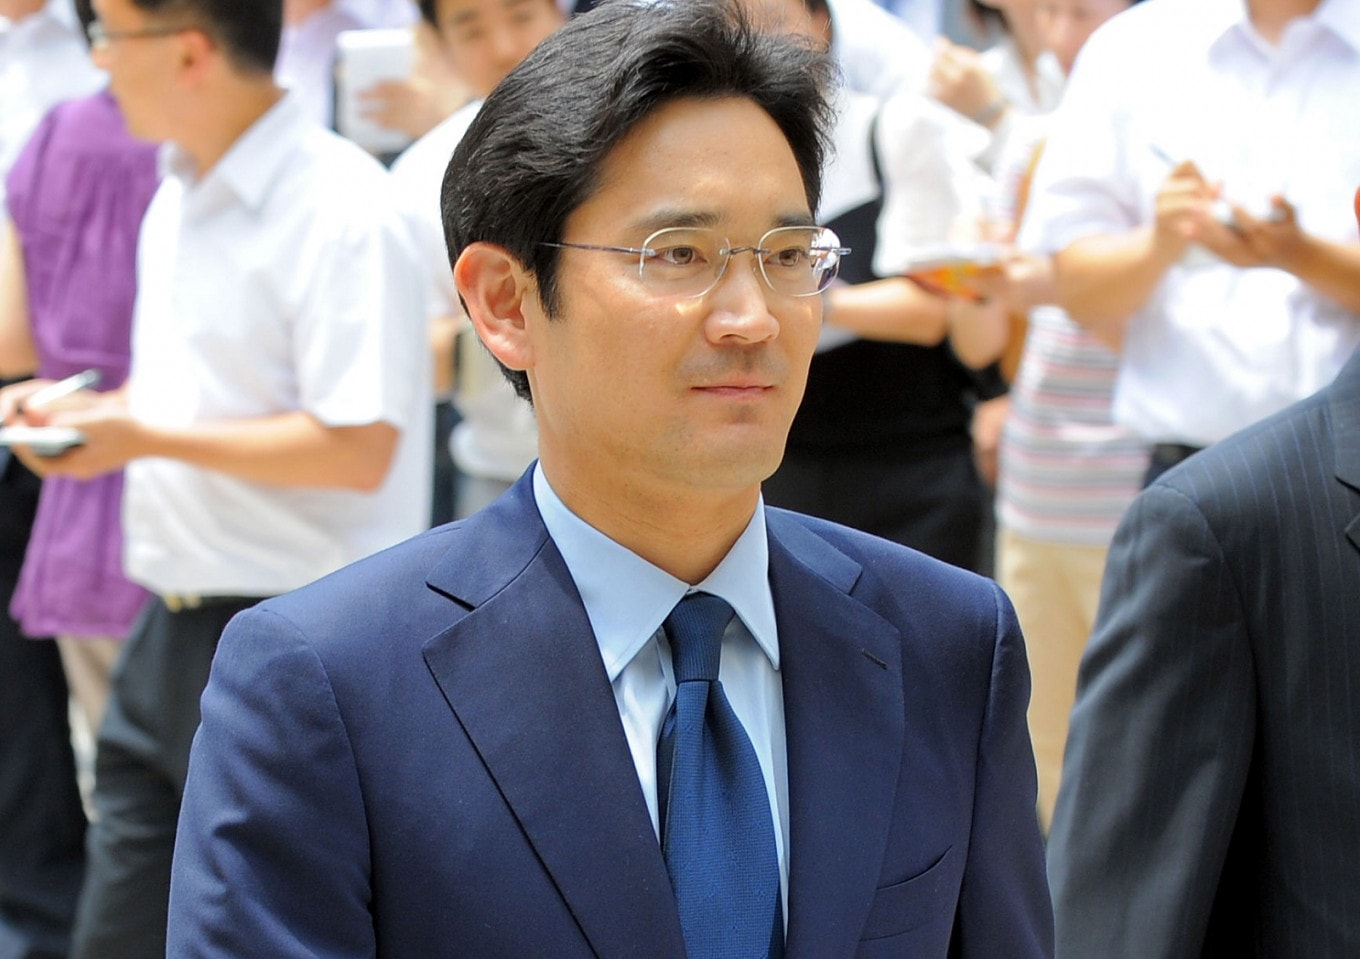 Samsung heir indicted in succession probe, Companies & Markets News & Top Stories